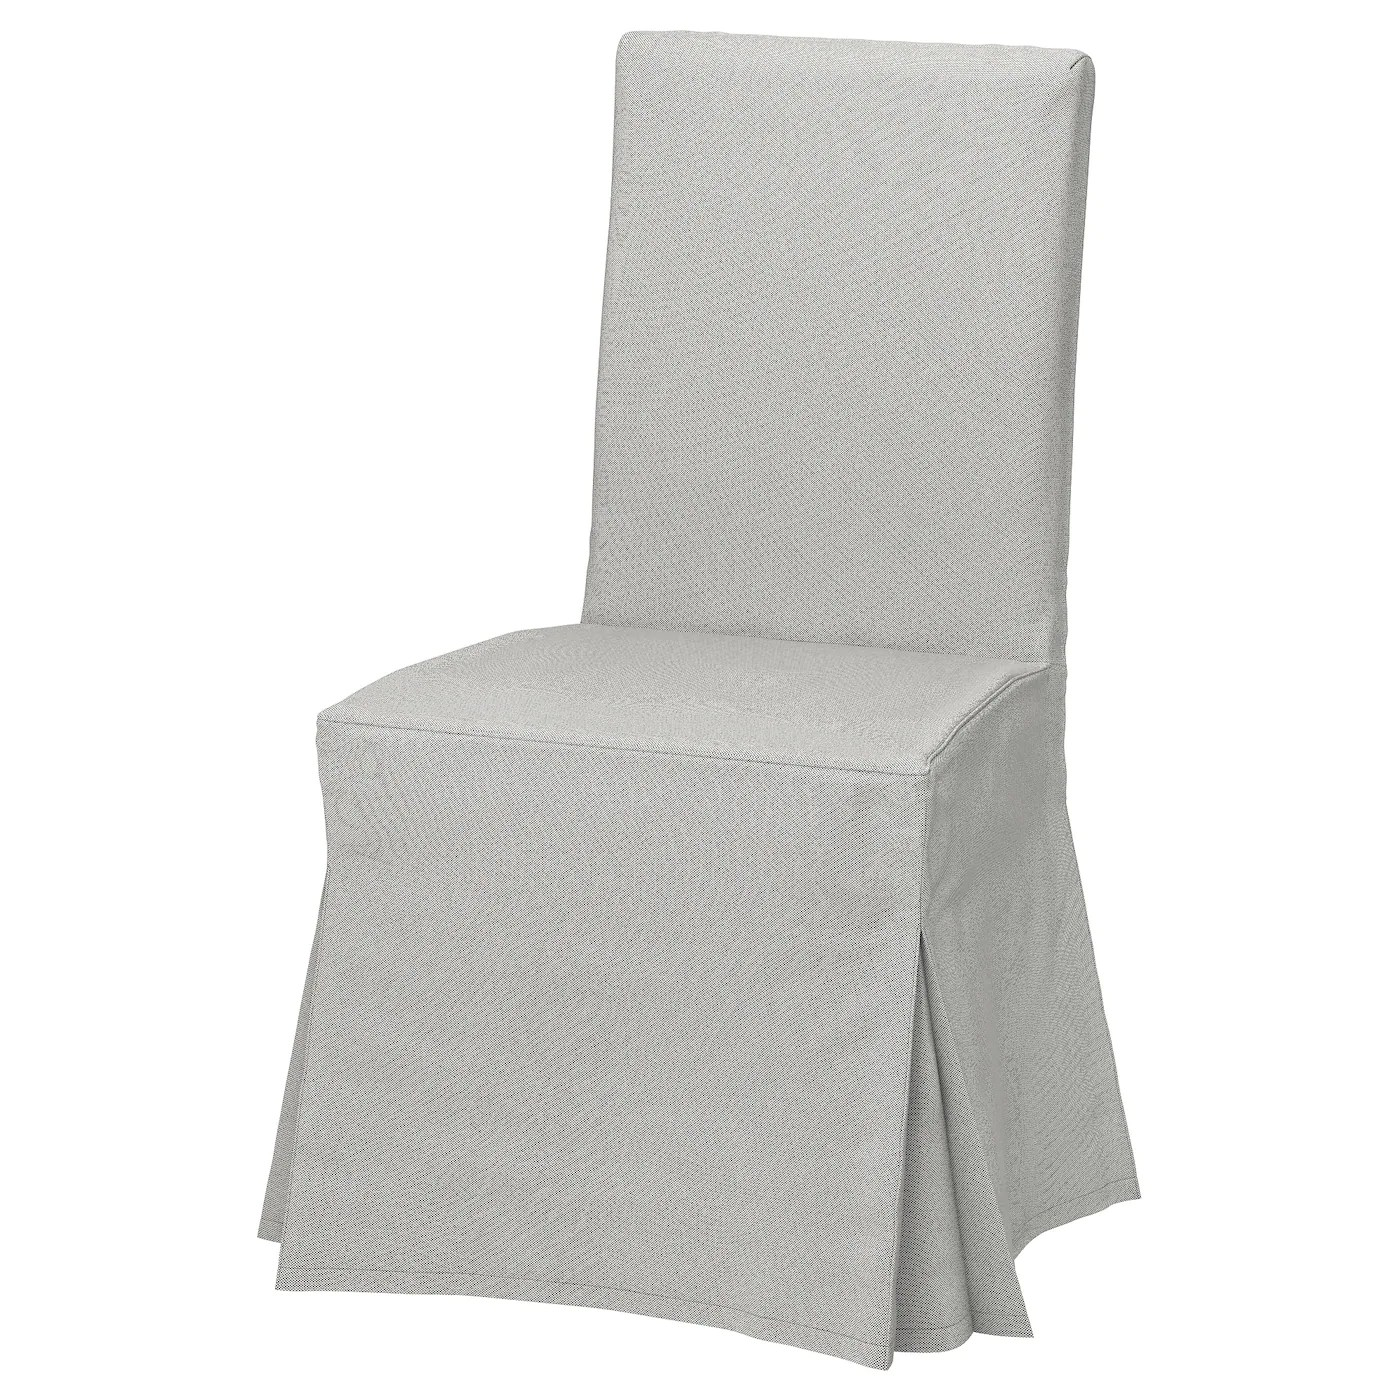 Parsons Chair Covers Chair Covers Dining Chair Covers Ikea